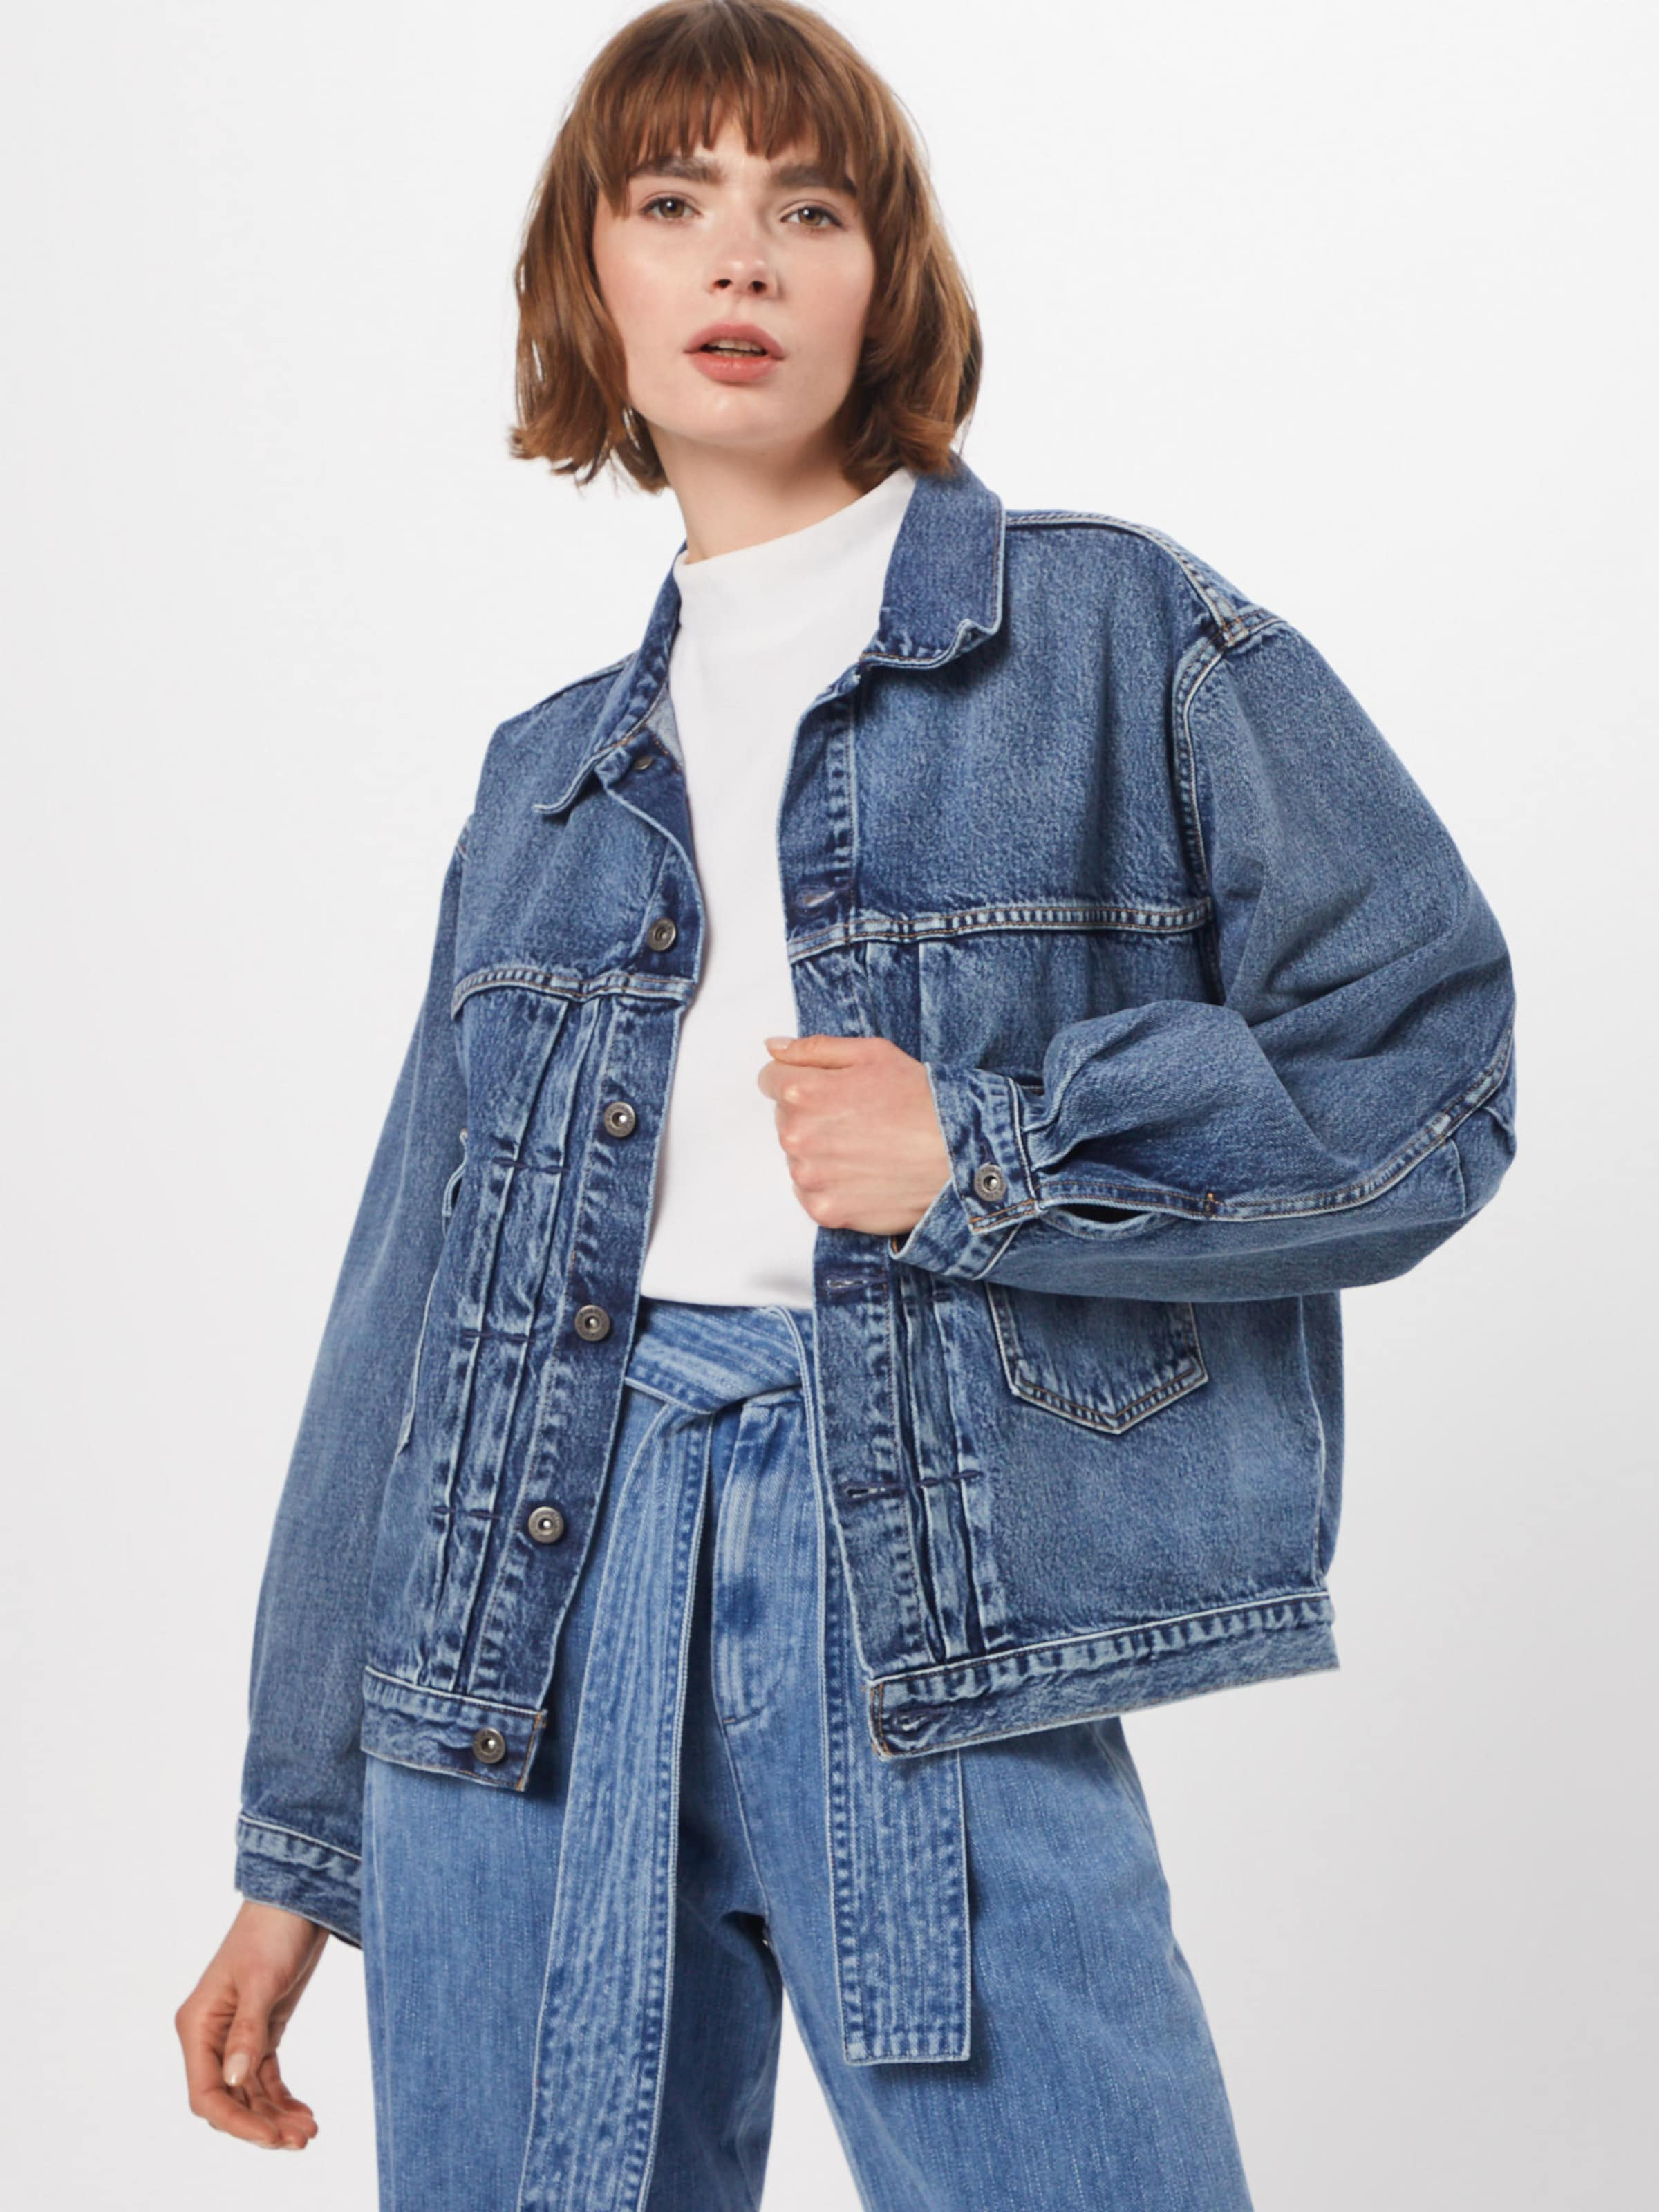 Jeansjacke In Crafted Levi's Letter Trucker' Madeamp; 'love Blue Denim NwnO0PkX8